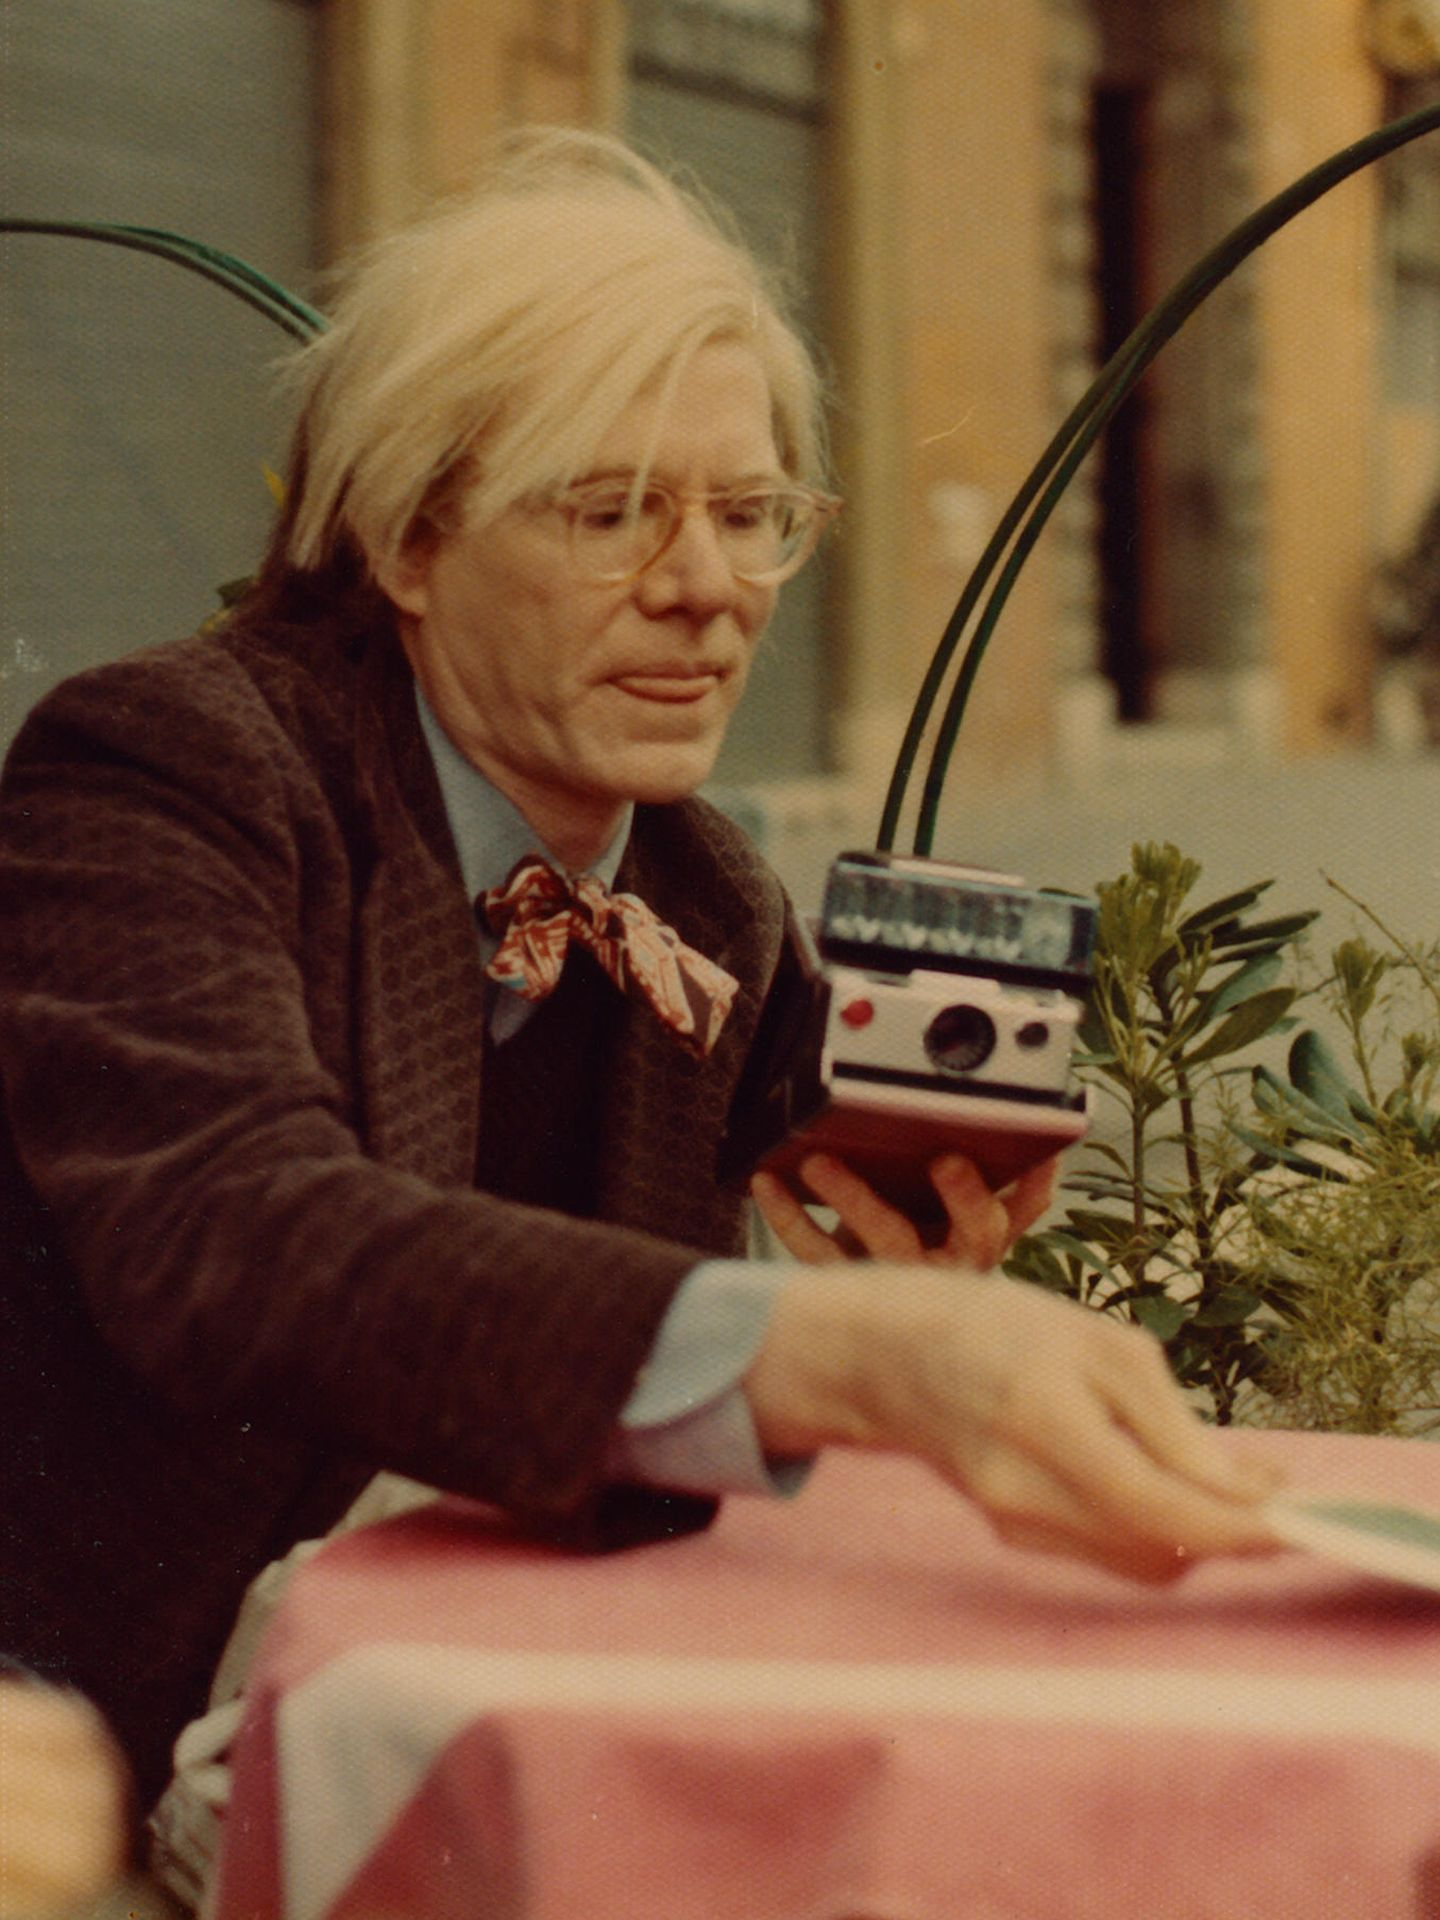 Andy Warhol (1972) / The Andy Warhol Foundation for the Visual Arts